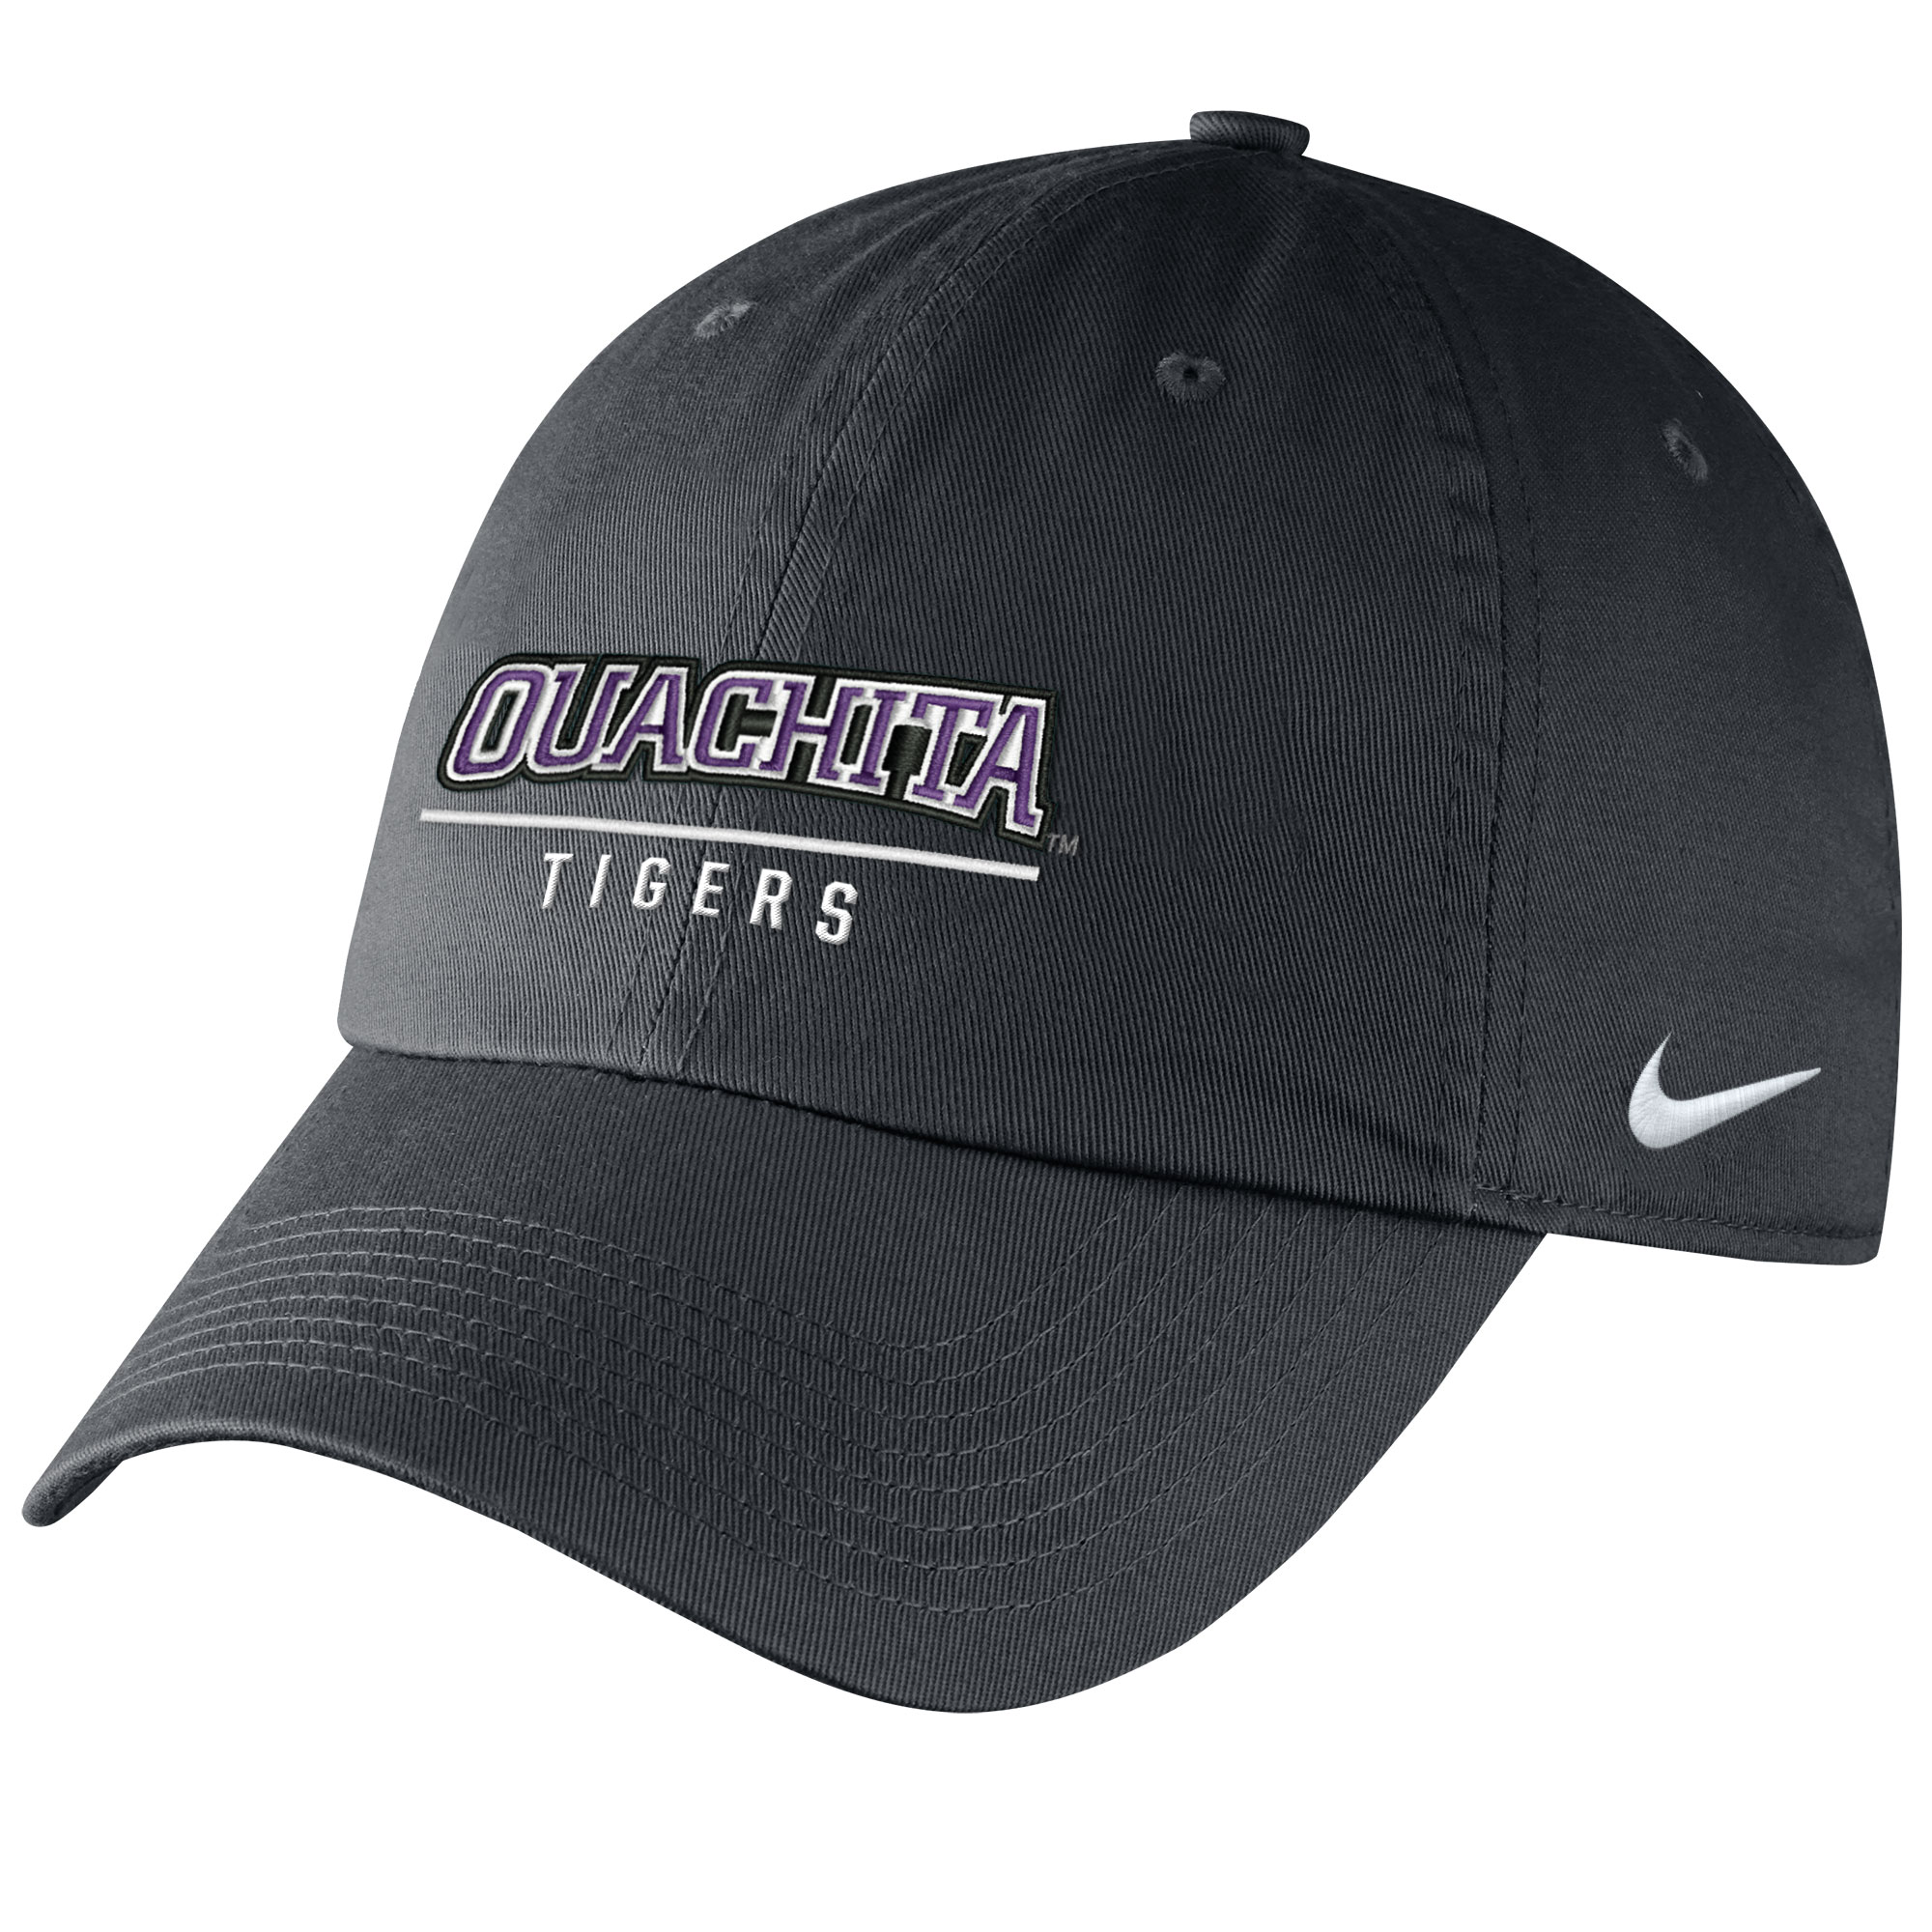 OUACHITA TIGERS CAP